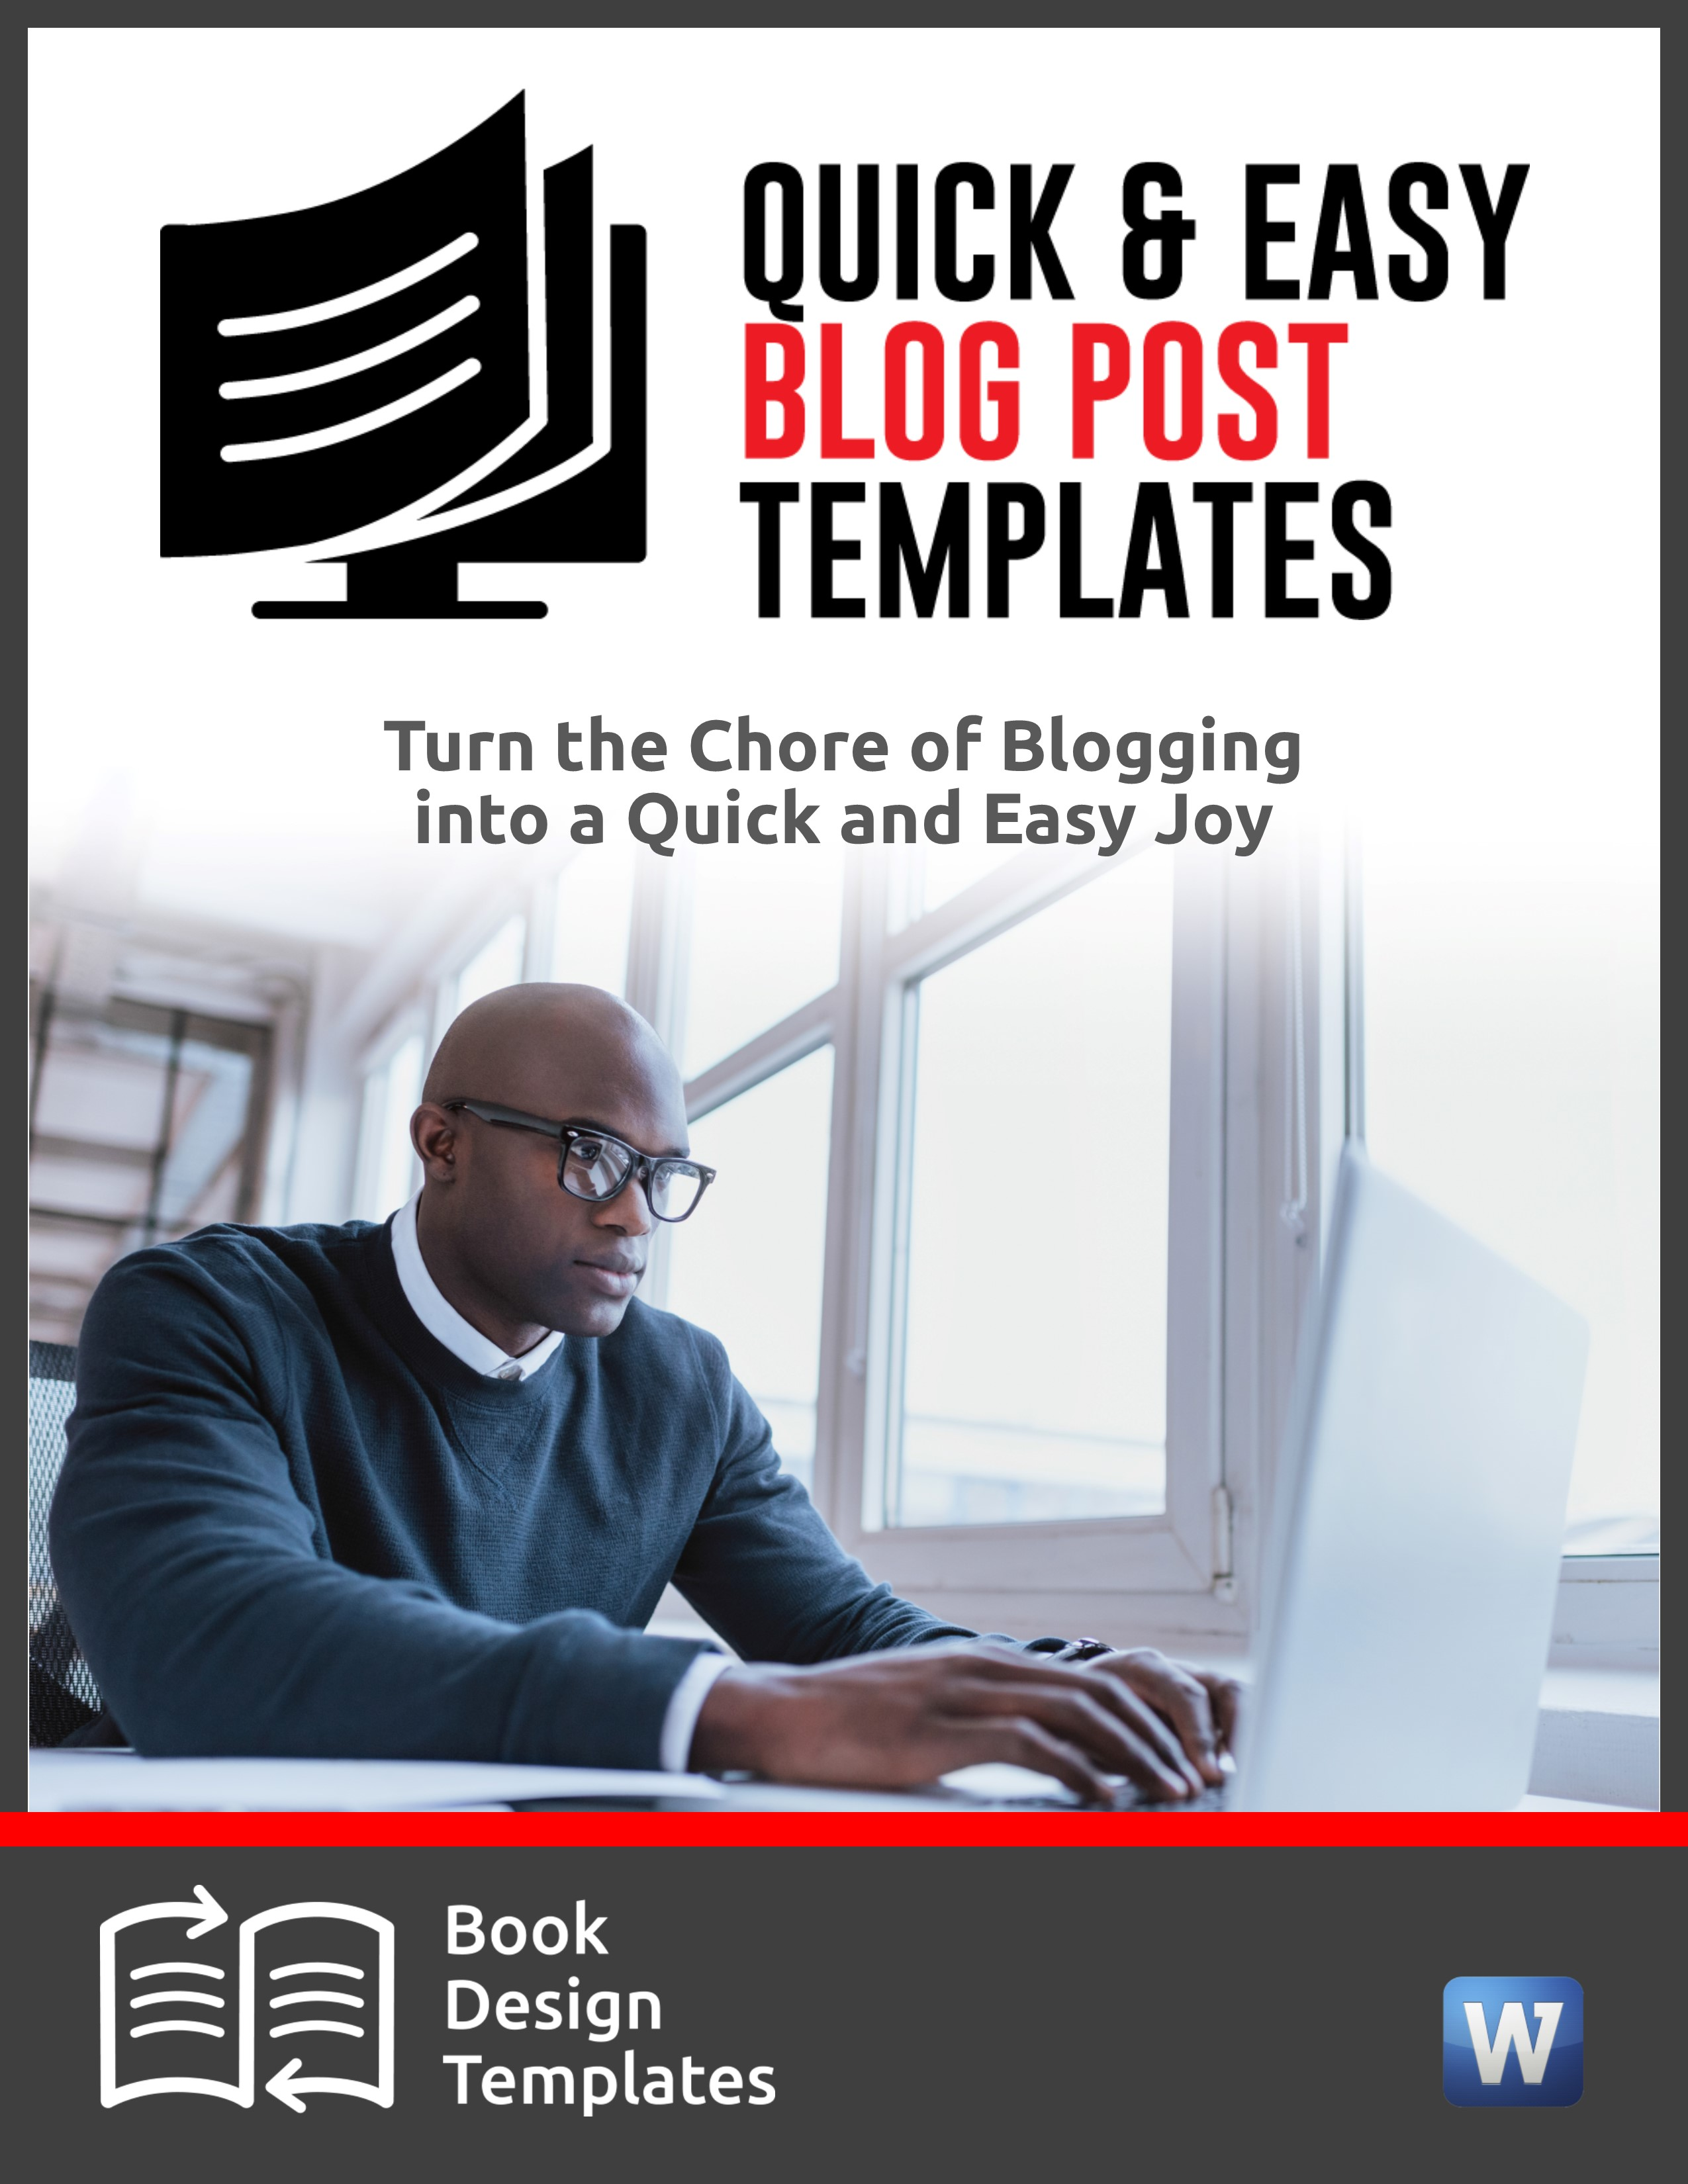 Quick and Easy Blog Post Templates